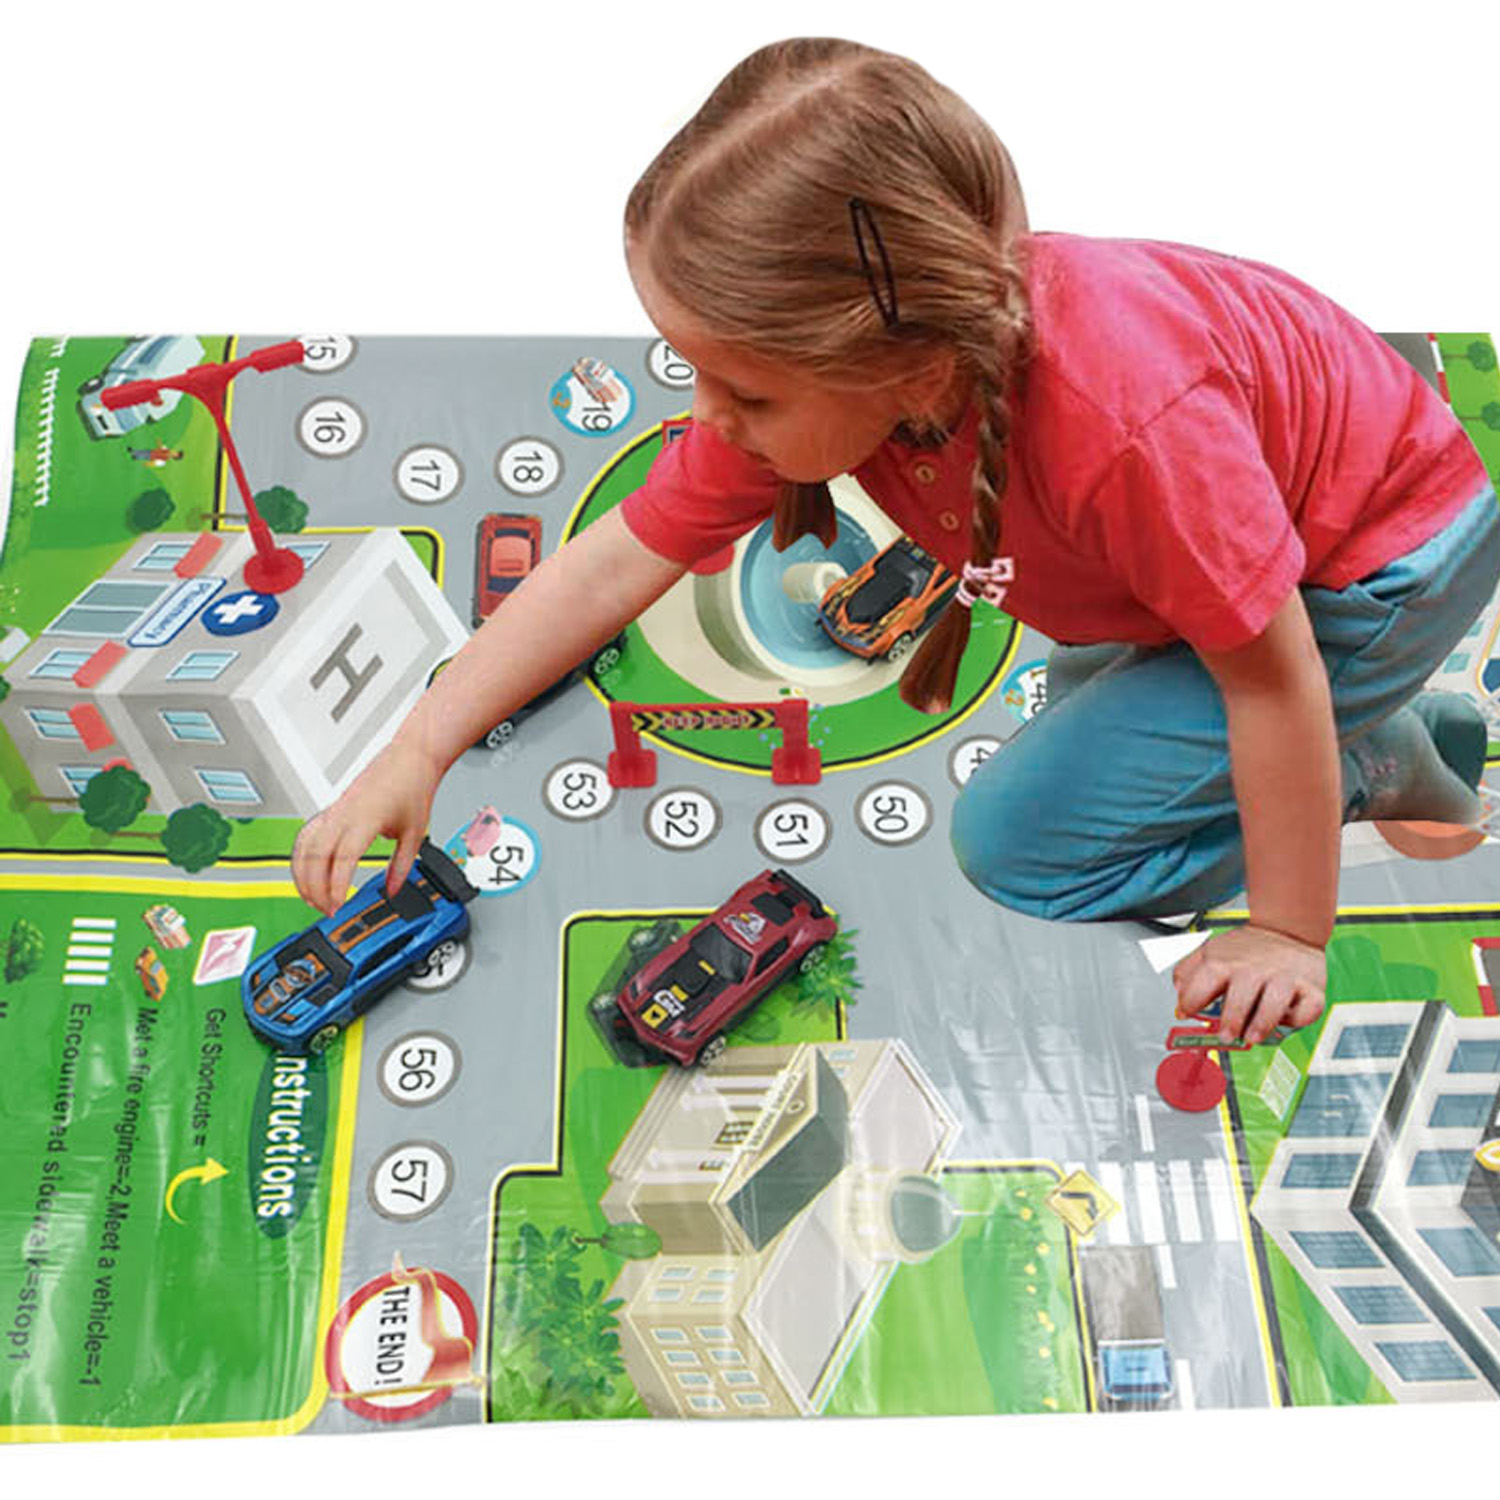 Kids Baby 75x52cm City Road Playmat City Traffic Carpet Highway Map Rug Playing Game Mat With Dice Interactive Educational Toy